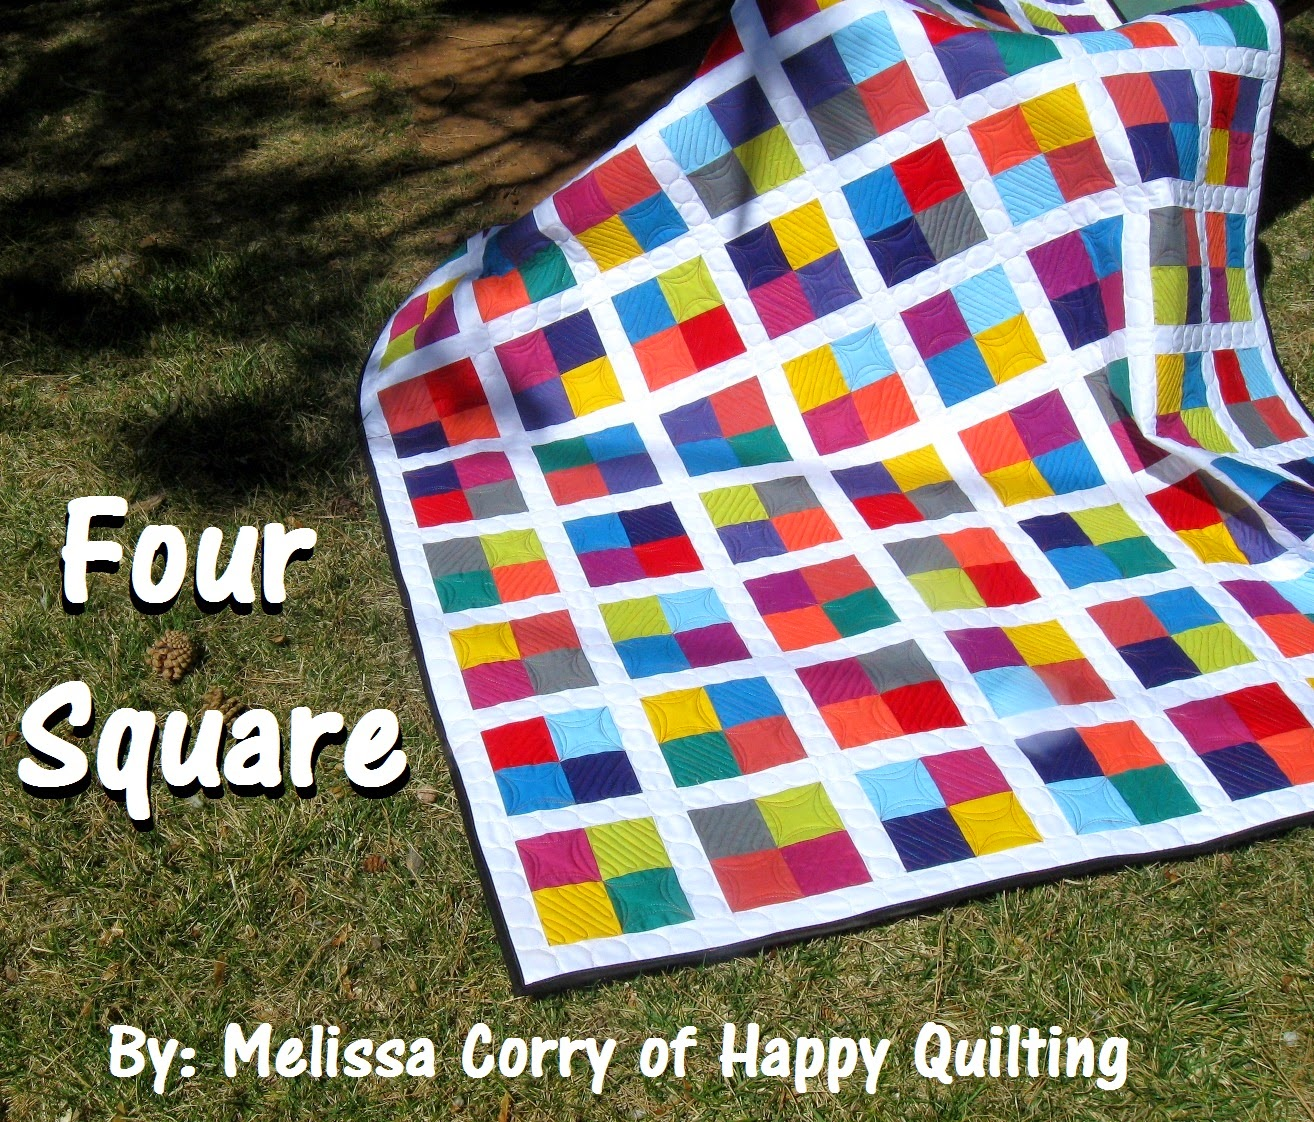 Happy Quilting: Four Square - A Tutorial and Giveaway : square quilt - Adamdwight.com